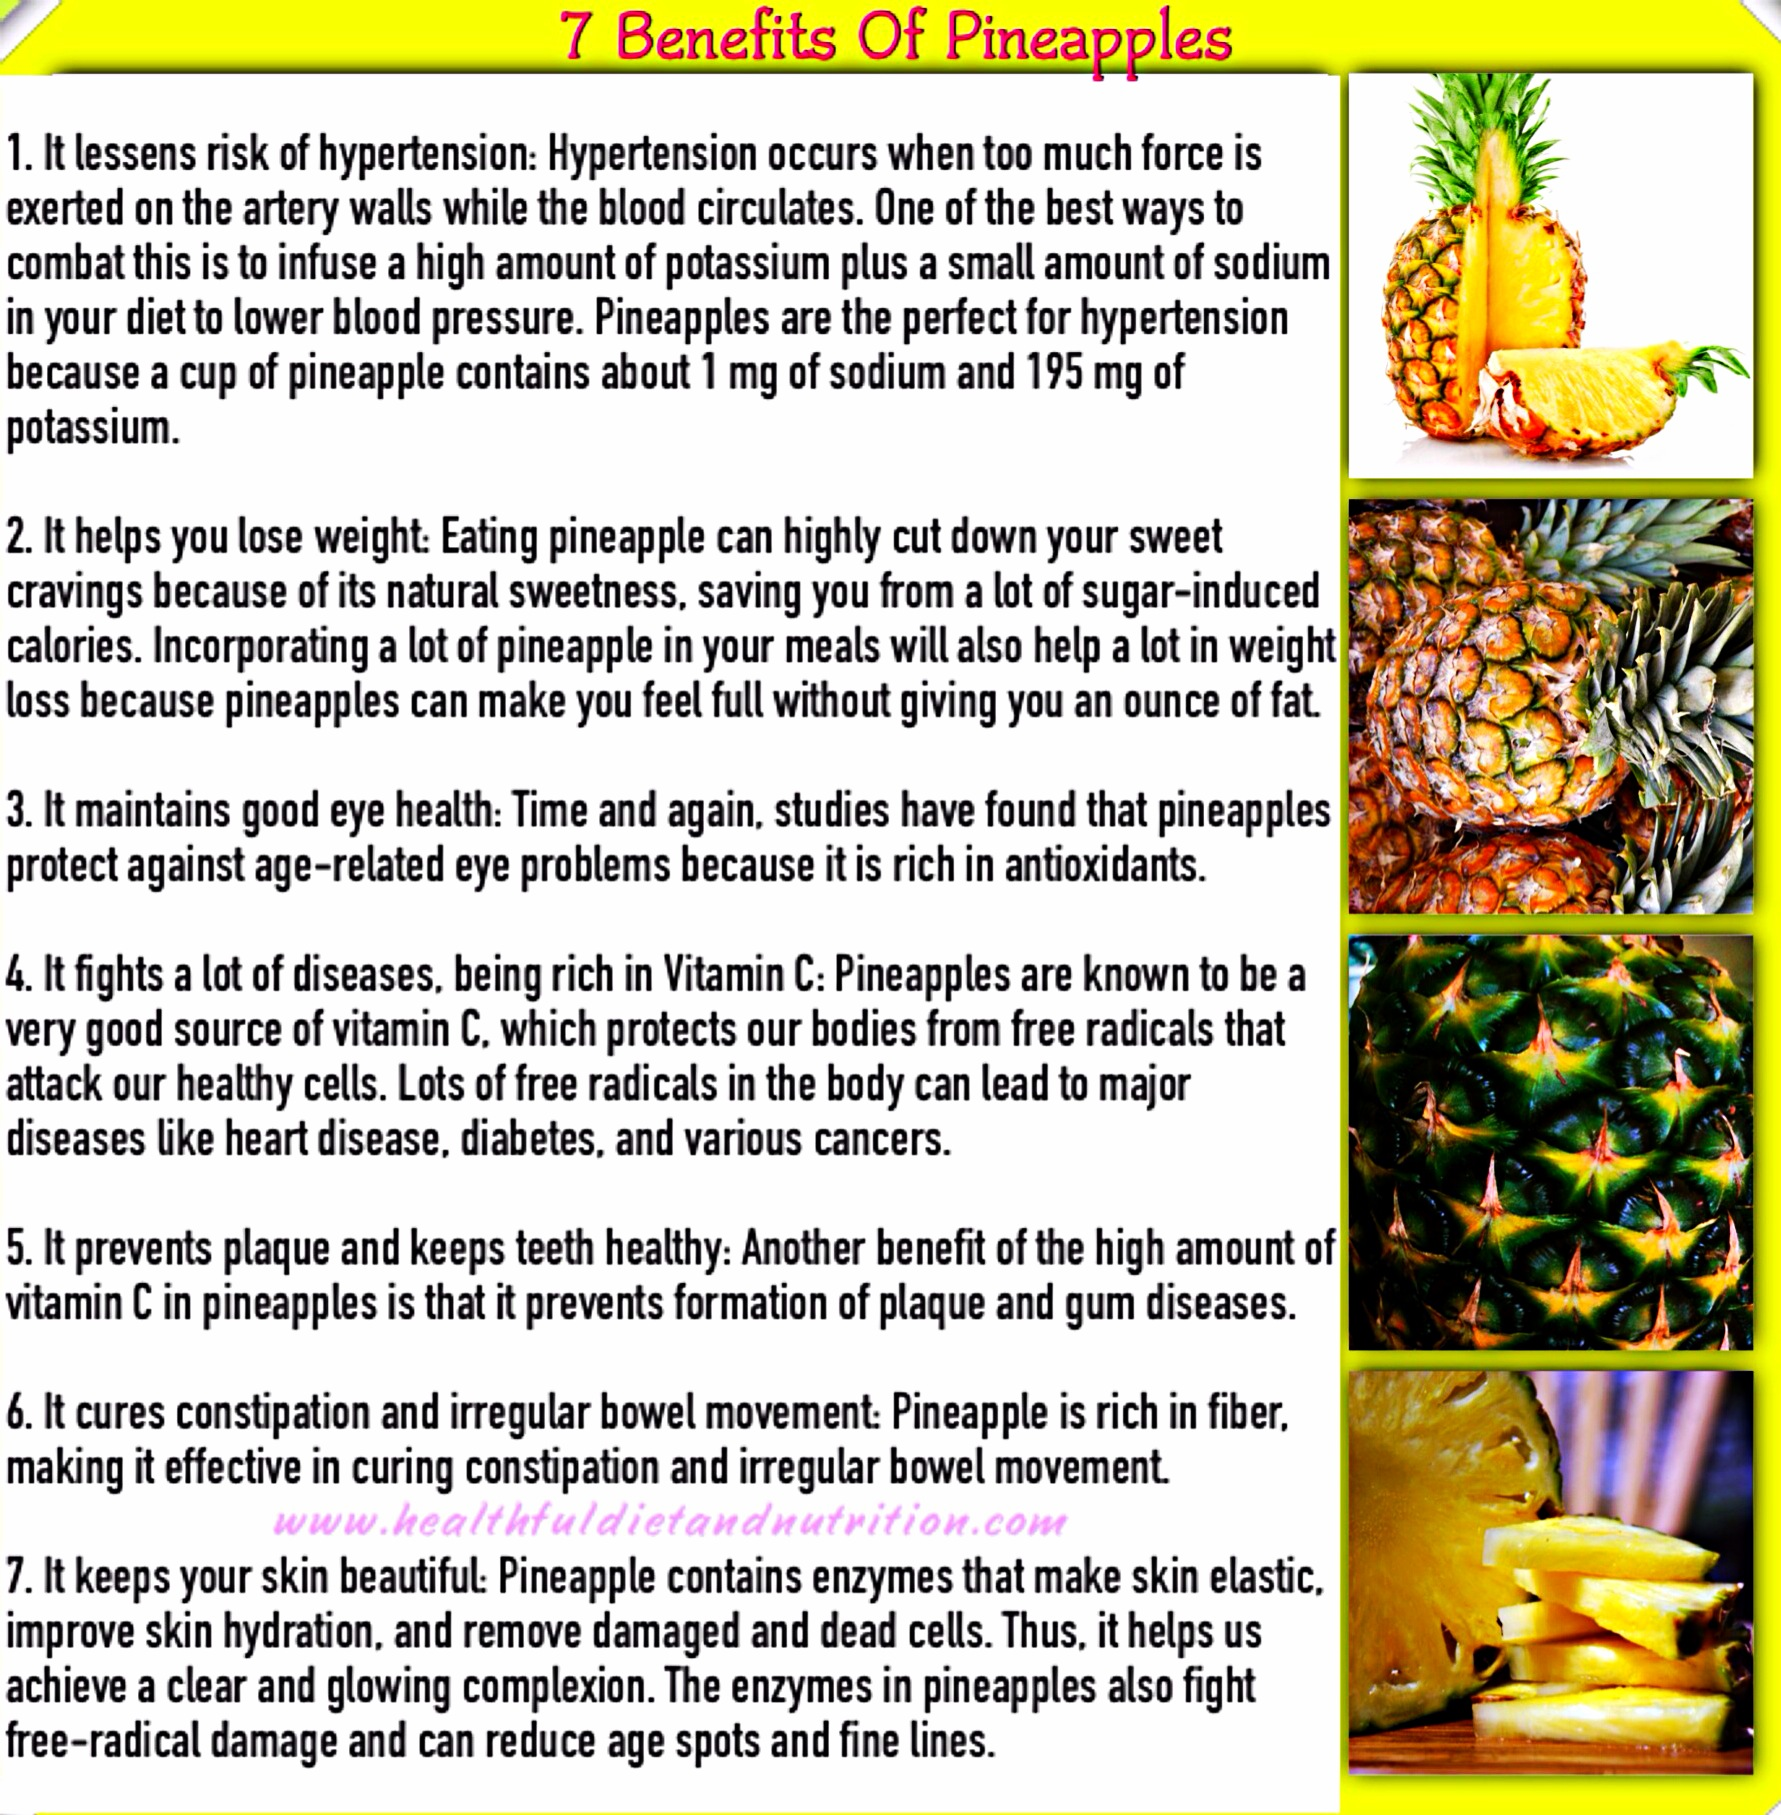 7 Benefits of Pineapples